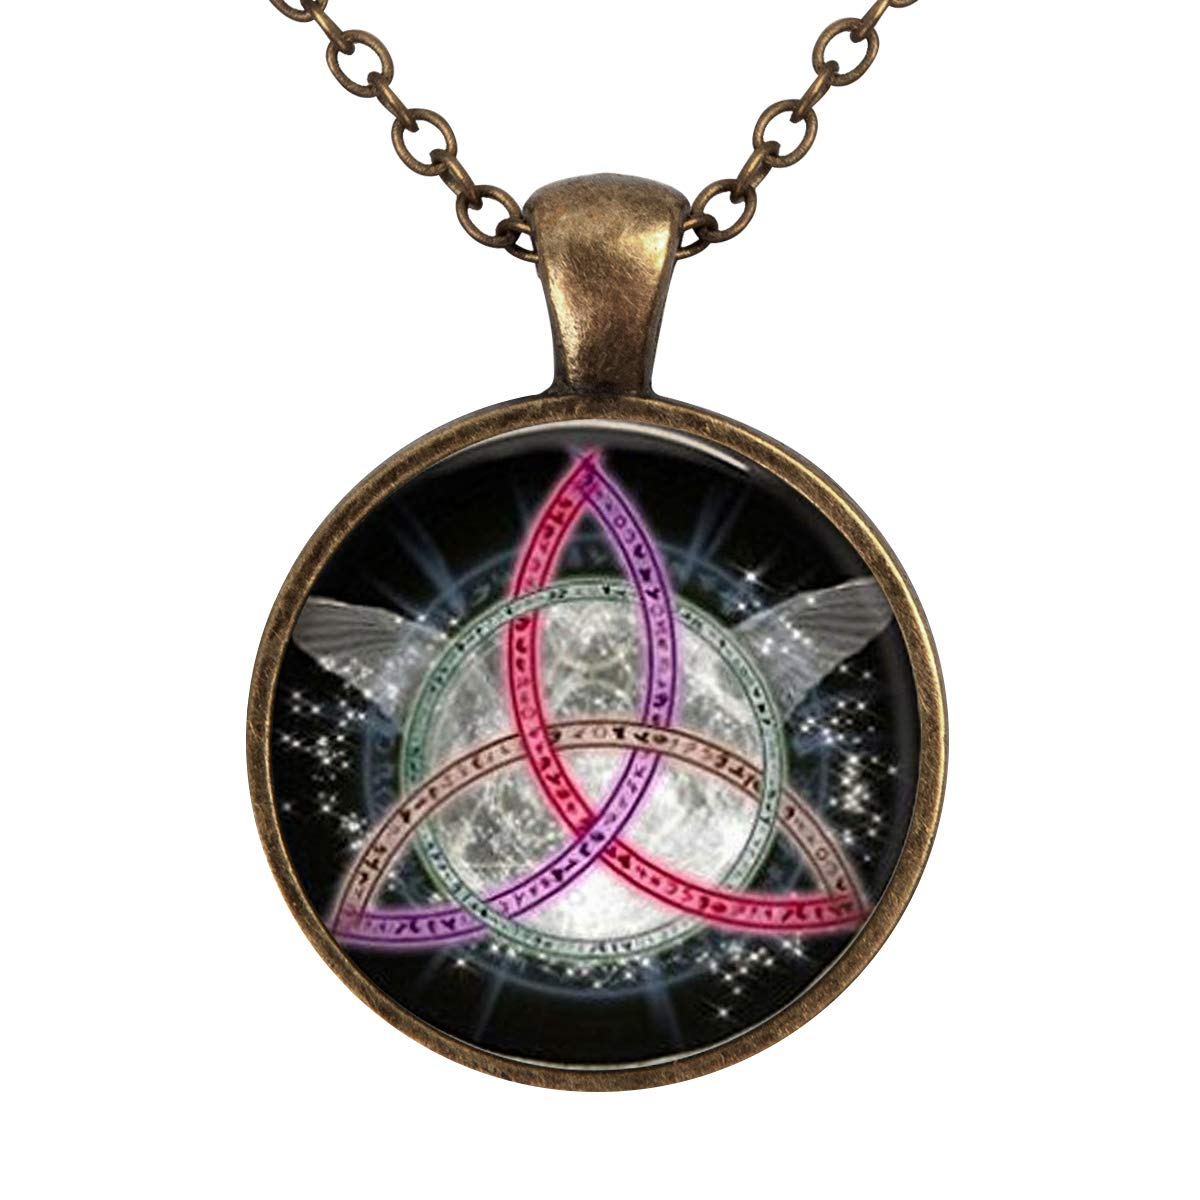 Lightrain Wicca Charms Pendant Necklace Vintage Bronze Chain Statement Necklace Handmade Jewelry Gifts